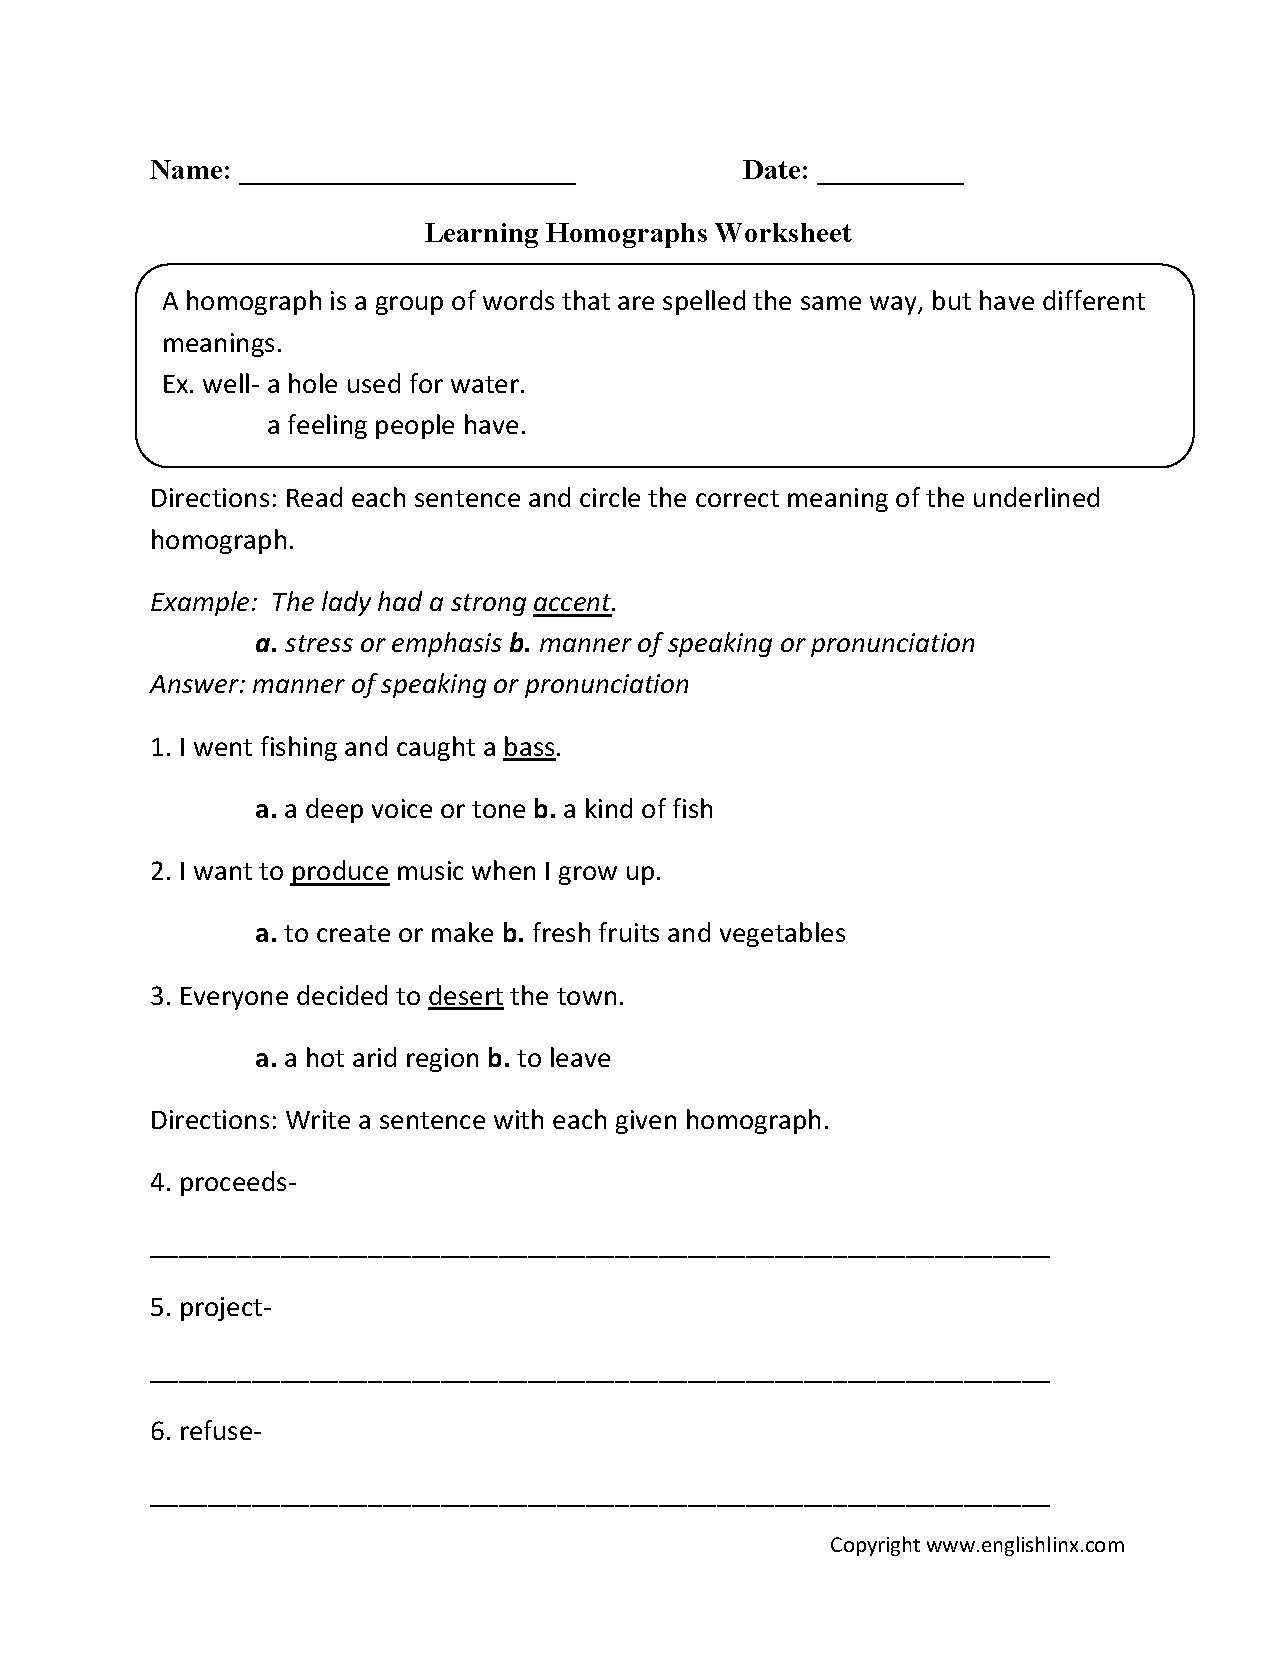 Free Worksheet Homograph Worksheets vocabulary worksheets homograph worksheets